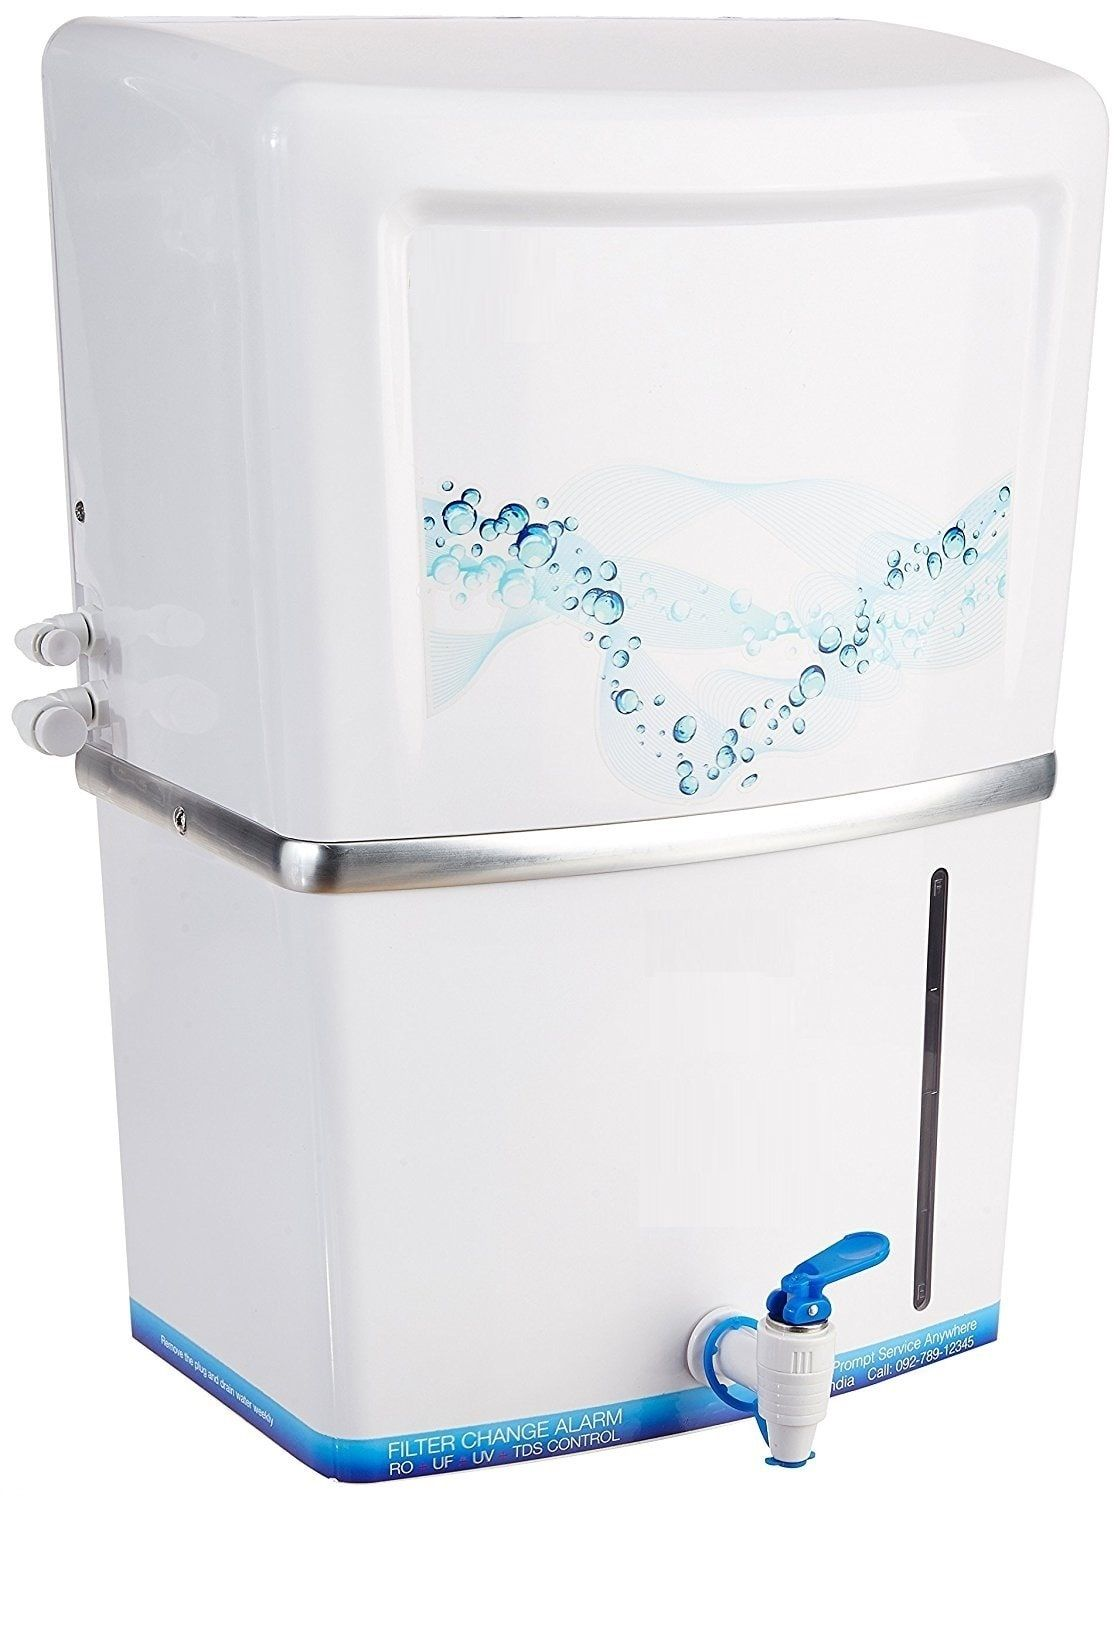 Ro Water Purifier Service Center In Ahmedabad Ro Water Purifier Water Purifier Kent Ro